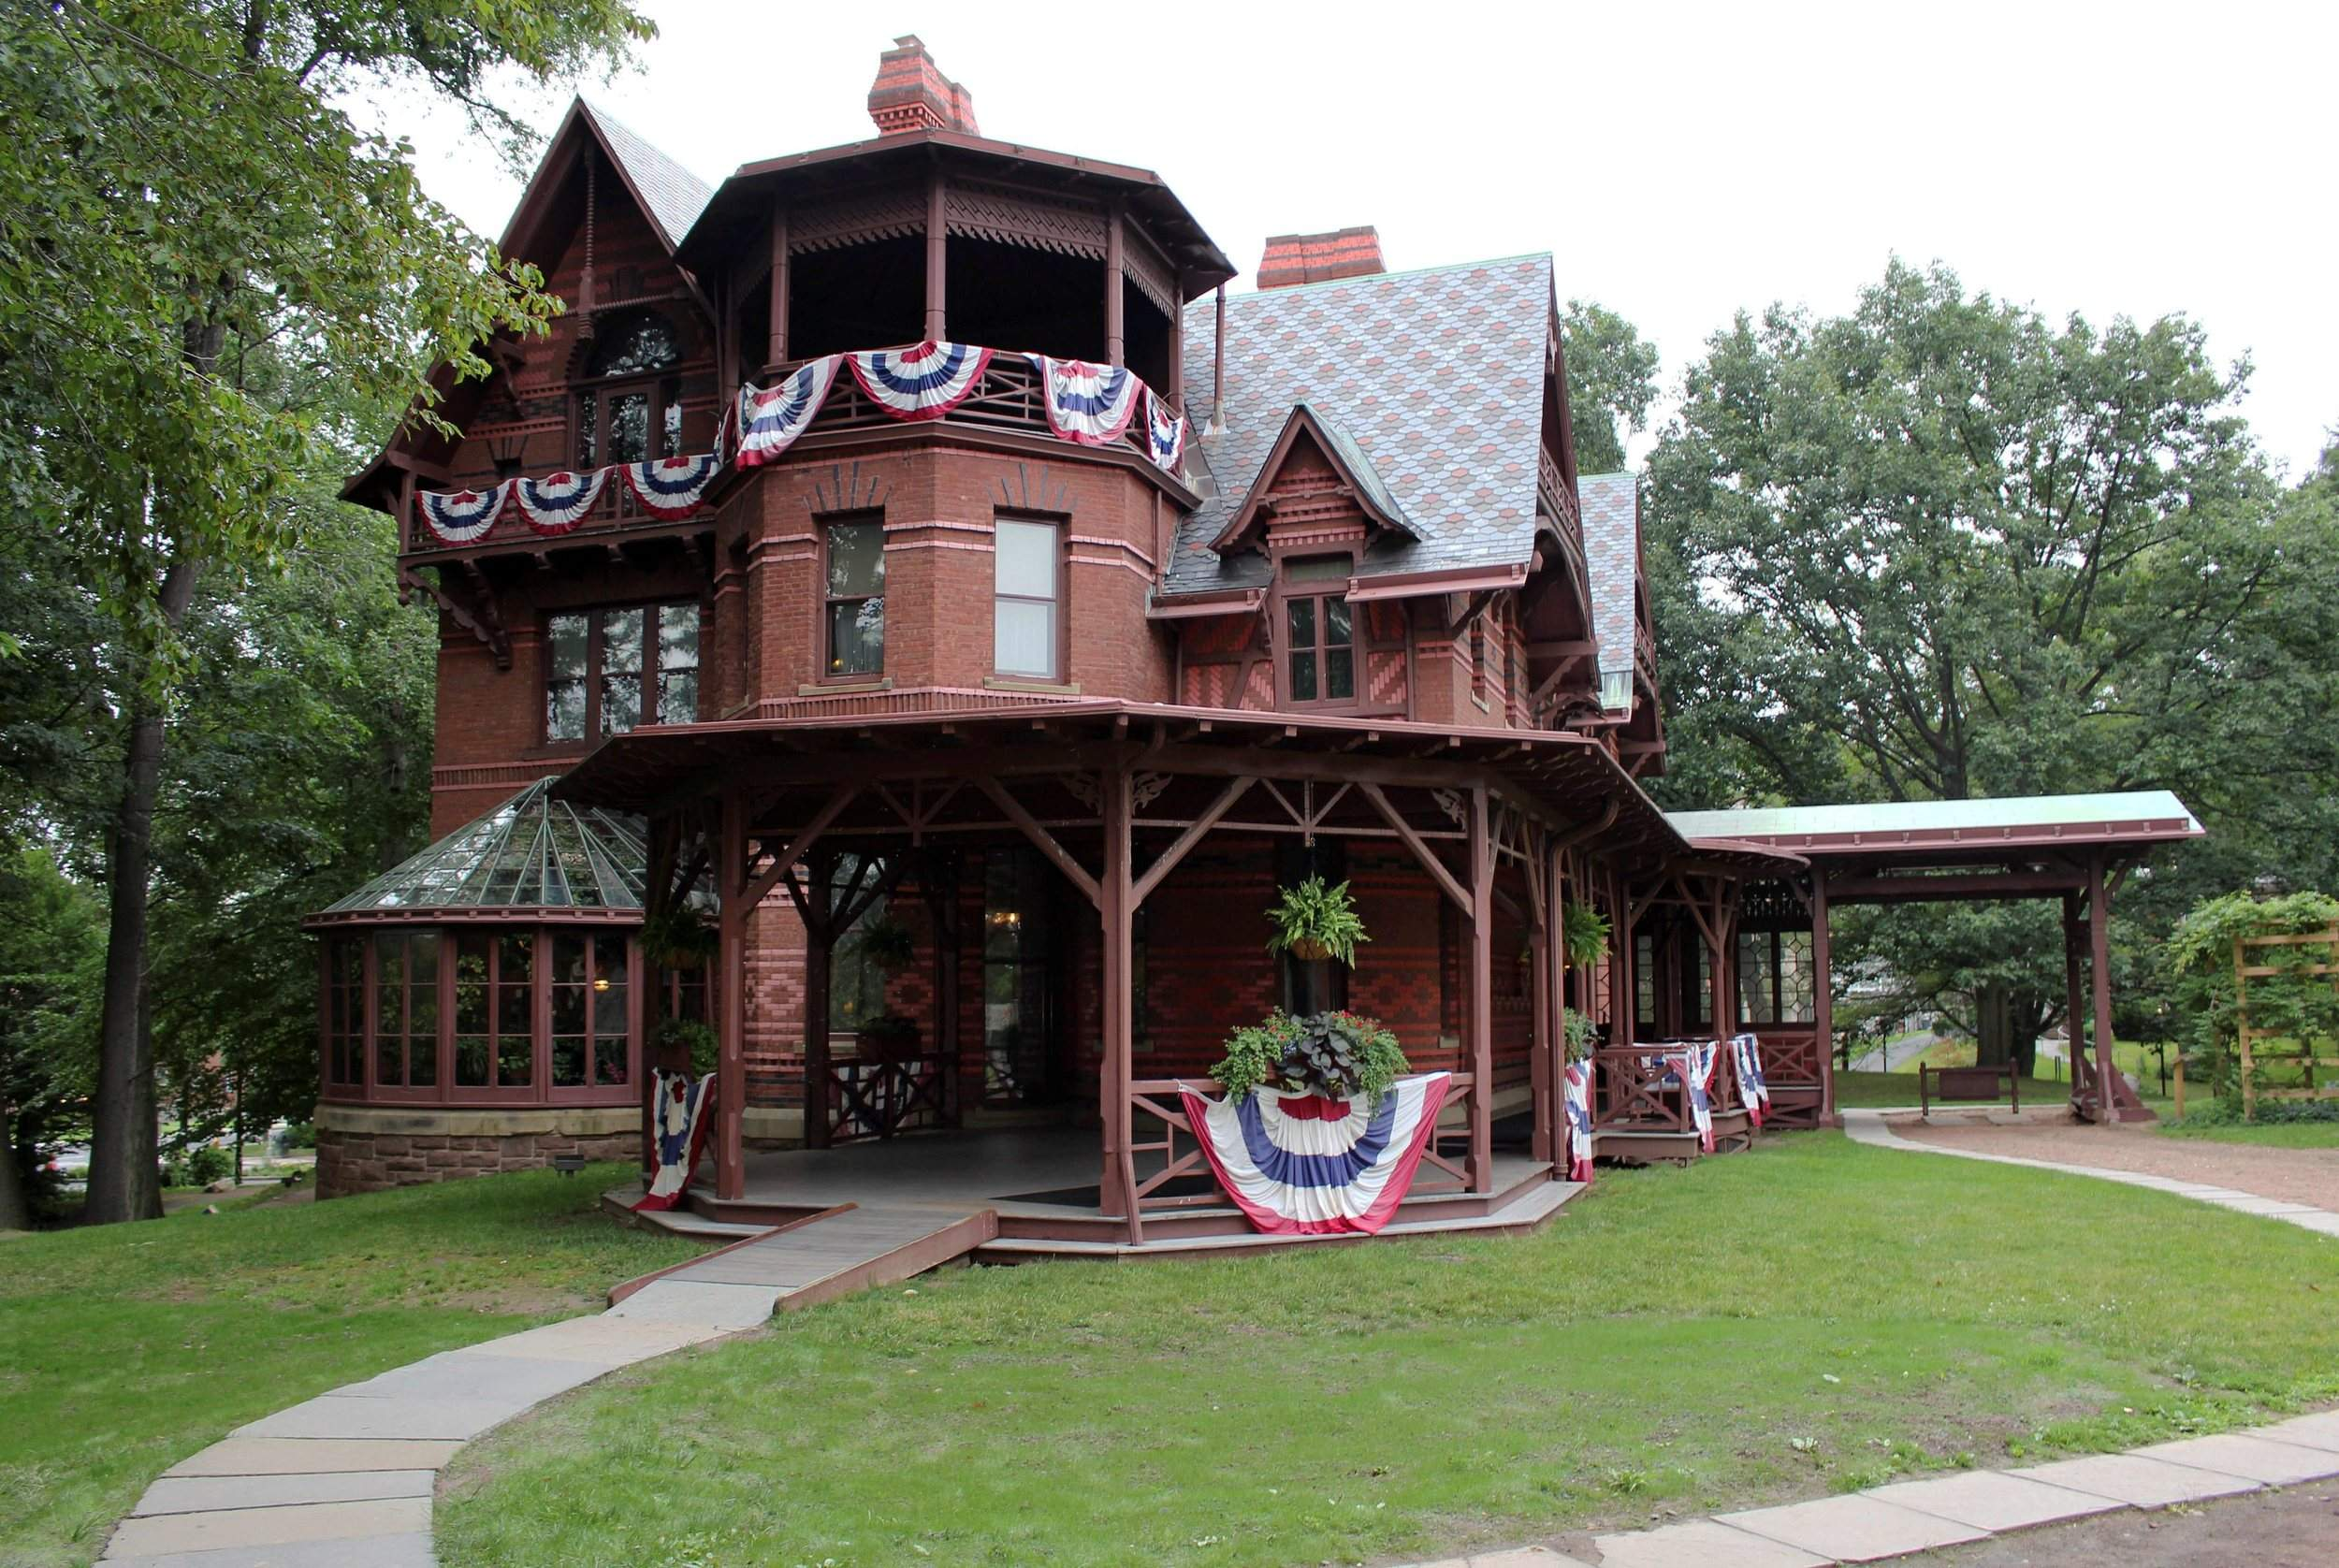 The Mark Twain House Sits Adorned With Red, White And Blue Bunting In  Hartford, Conn. A Novelty Tour Of The Authoru0027s Historic Home Allows  Visitors To ...